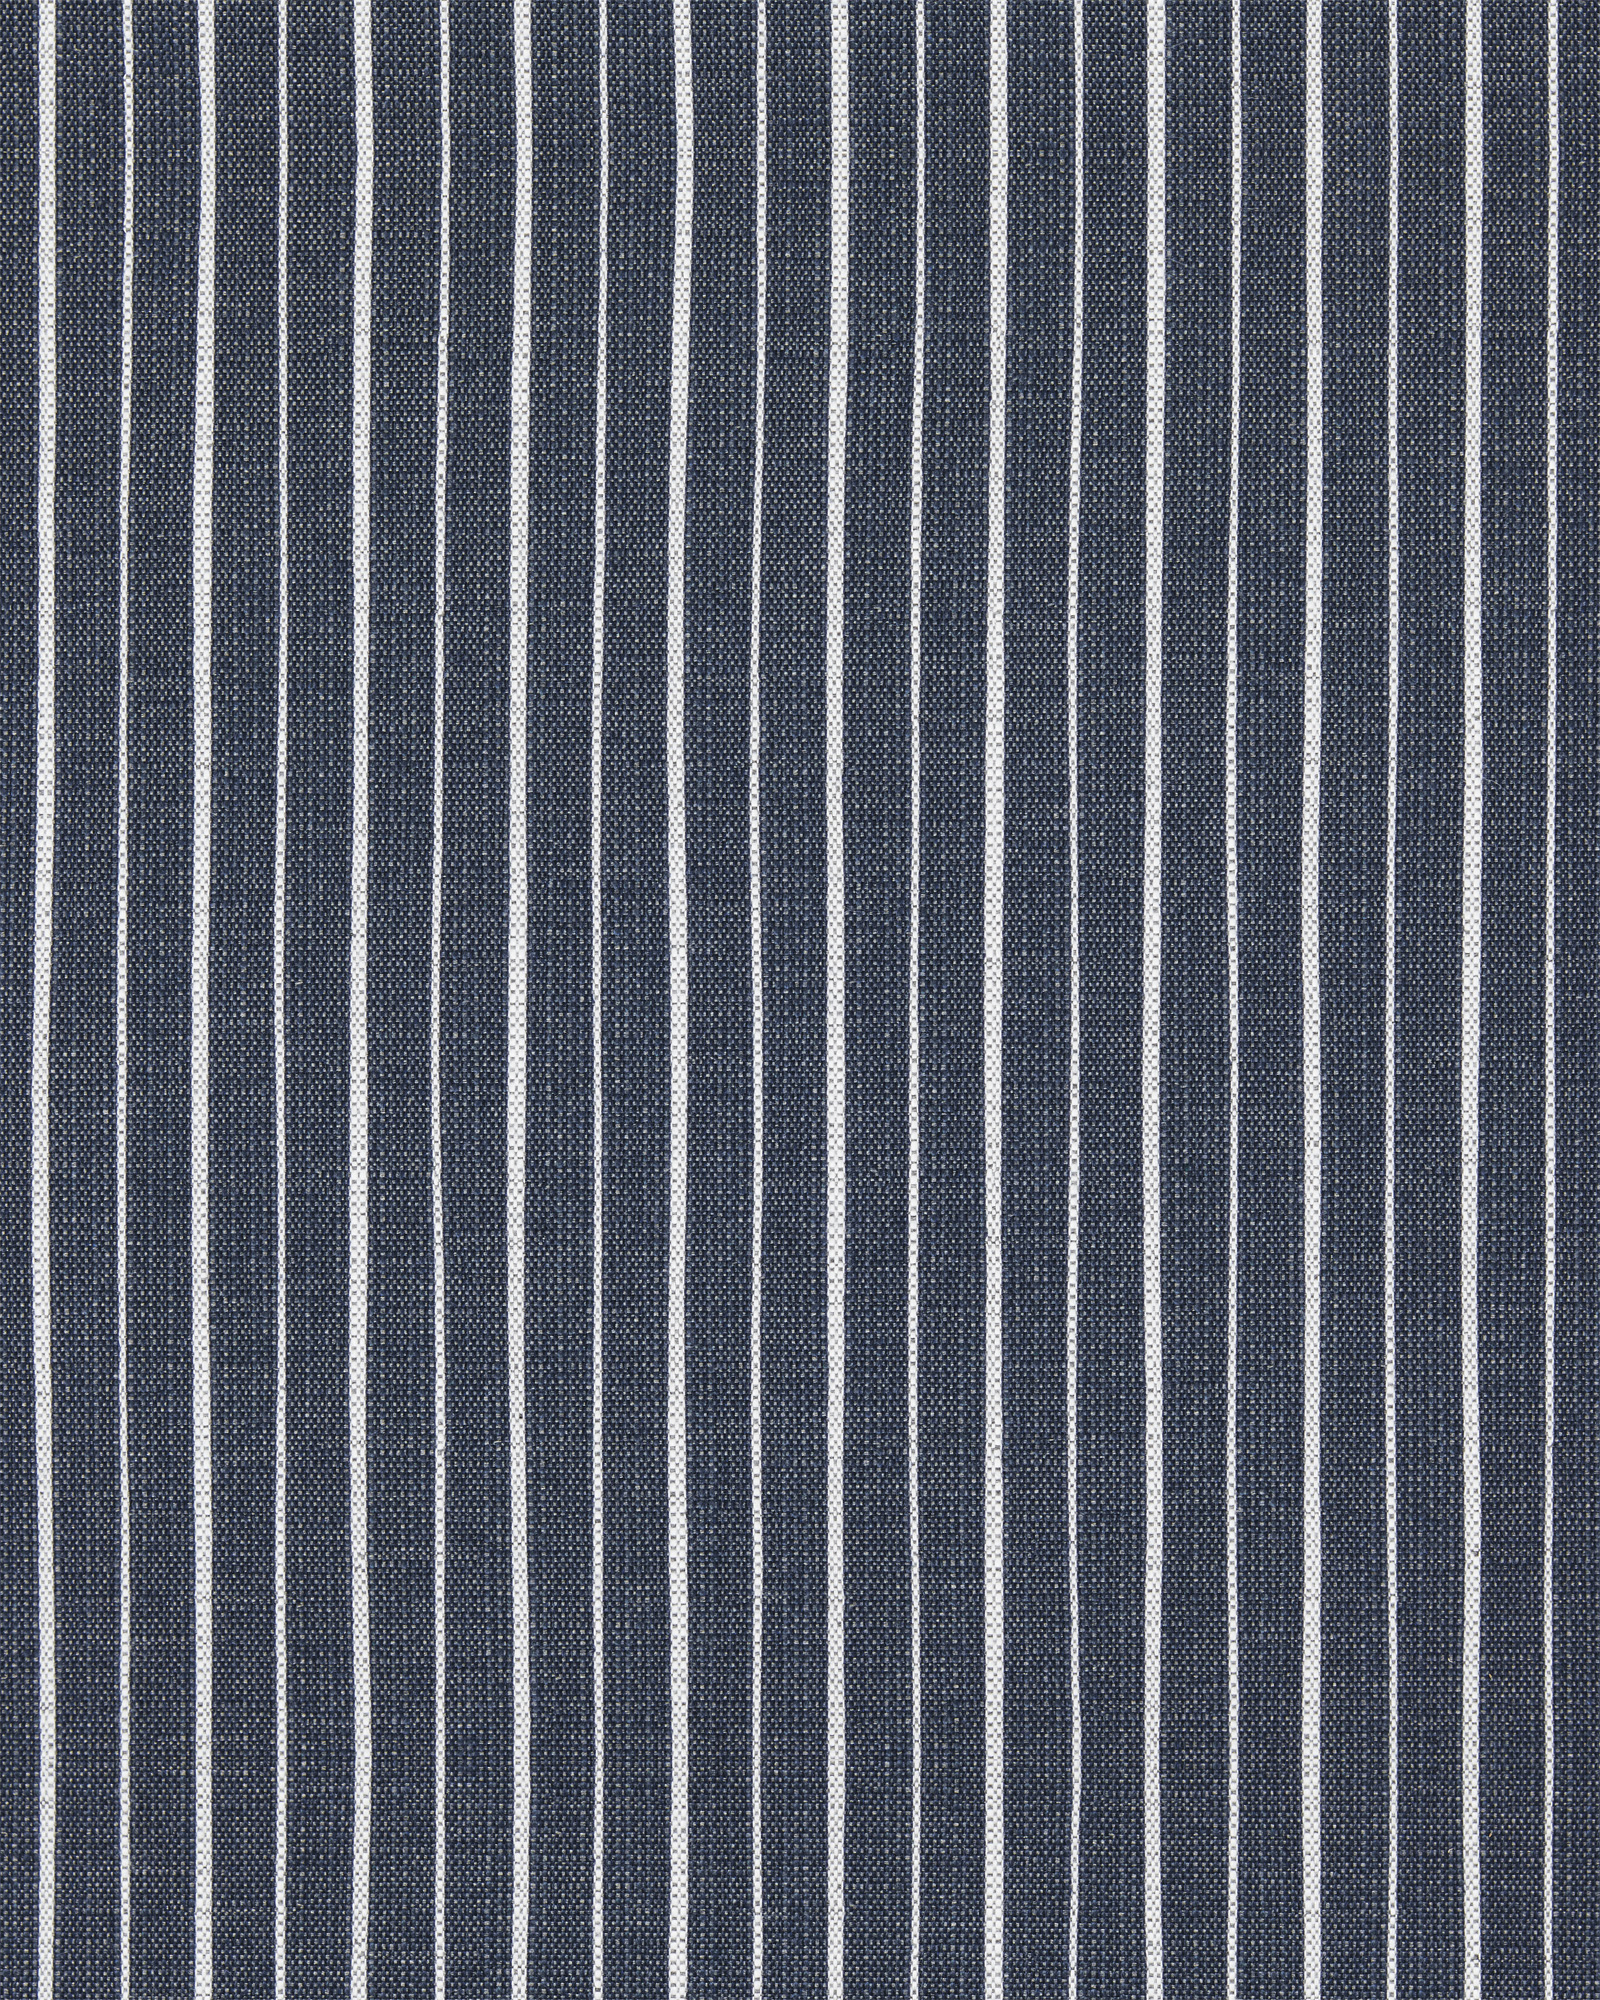 Fabric by the Yard - Sunbrella® Sail Stripe, Navy